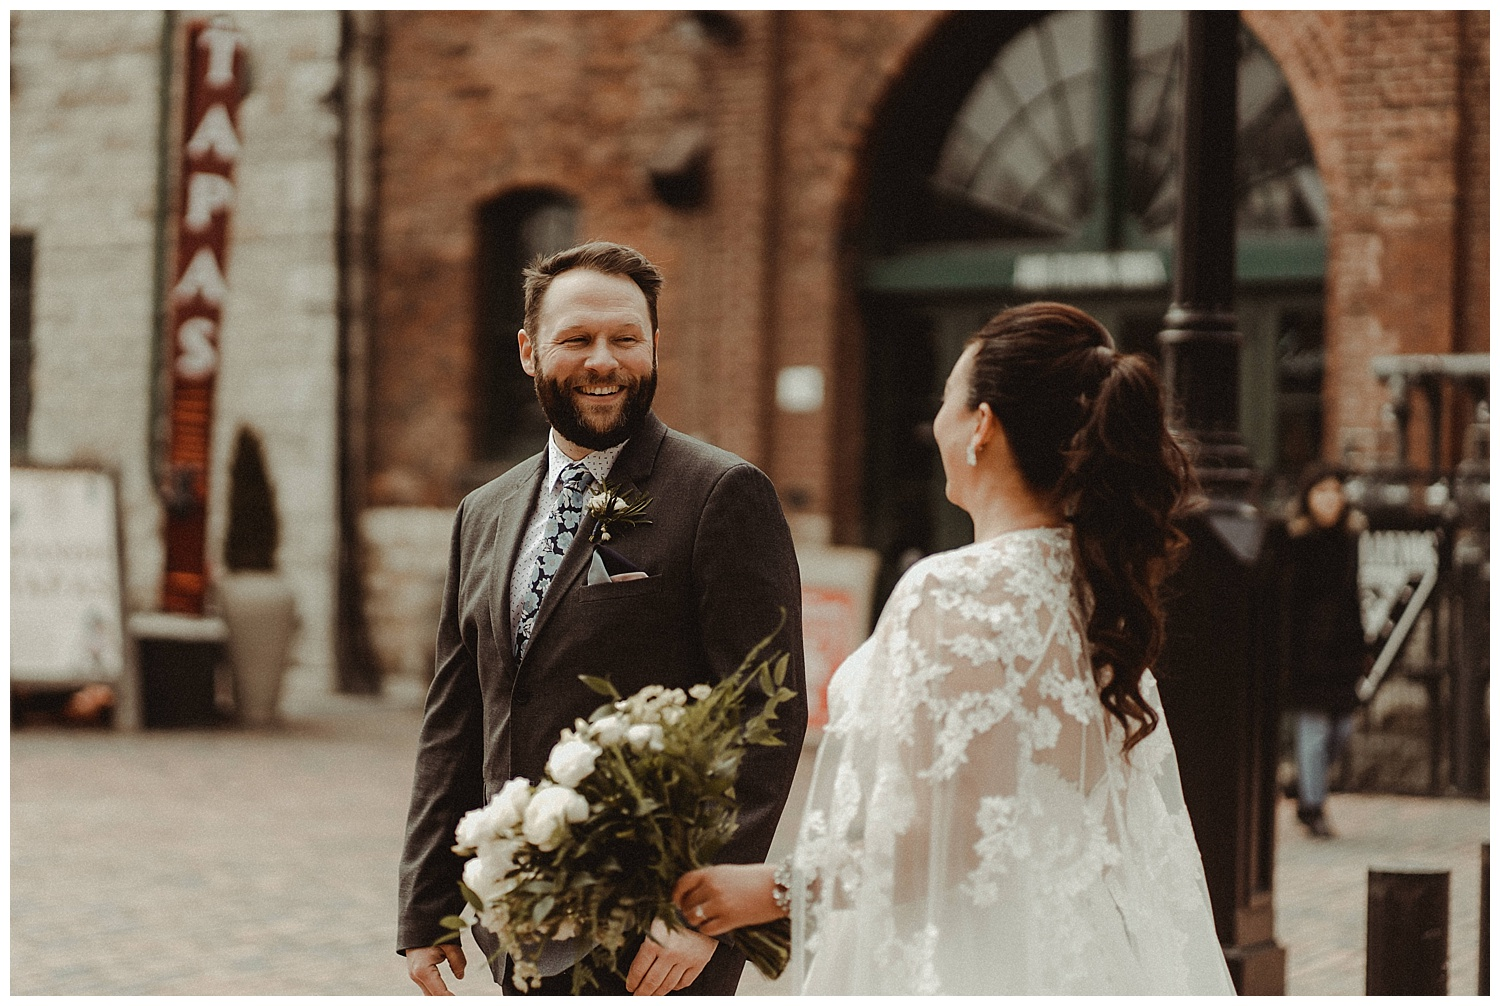 Katie Marie Photography | Archeo Wedding Arta Gallery Wedding | Distillery District Wedding | Toronto Wedding Photographer | Hamilton Toronto Ontario Wedding Photographer |_0006.jpg